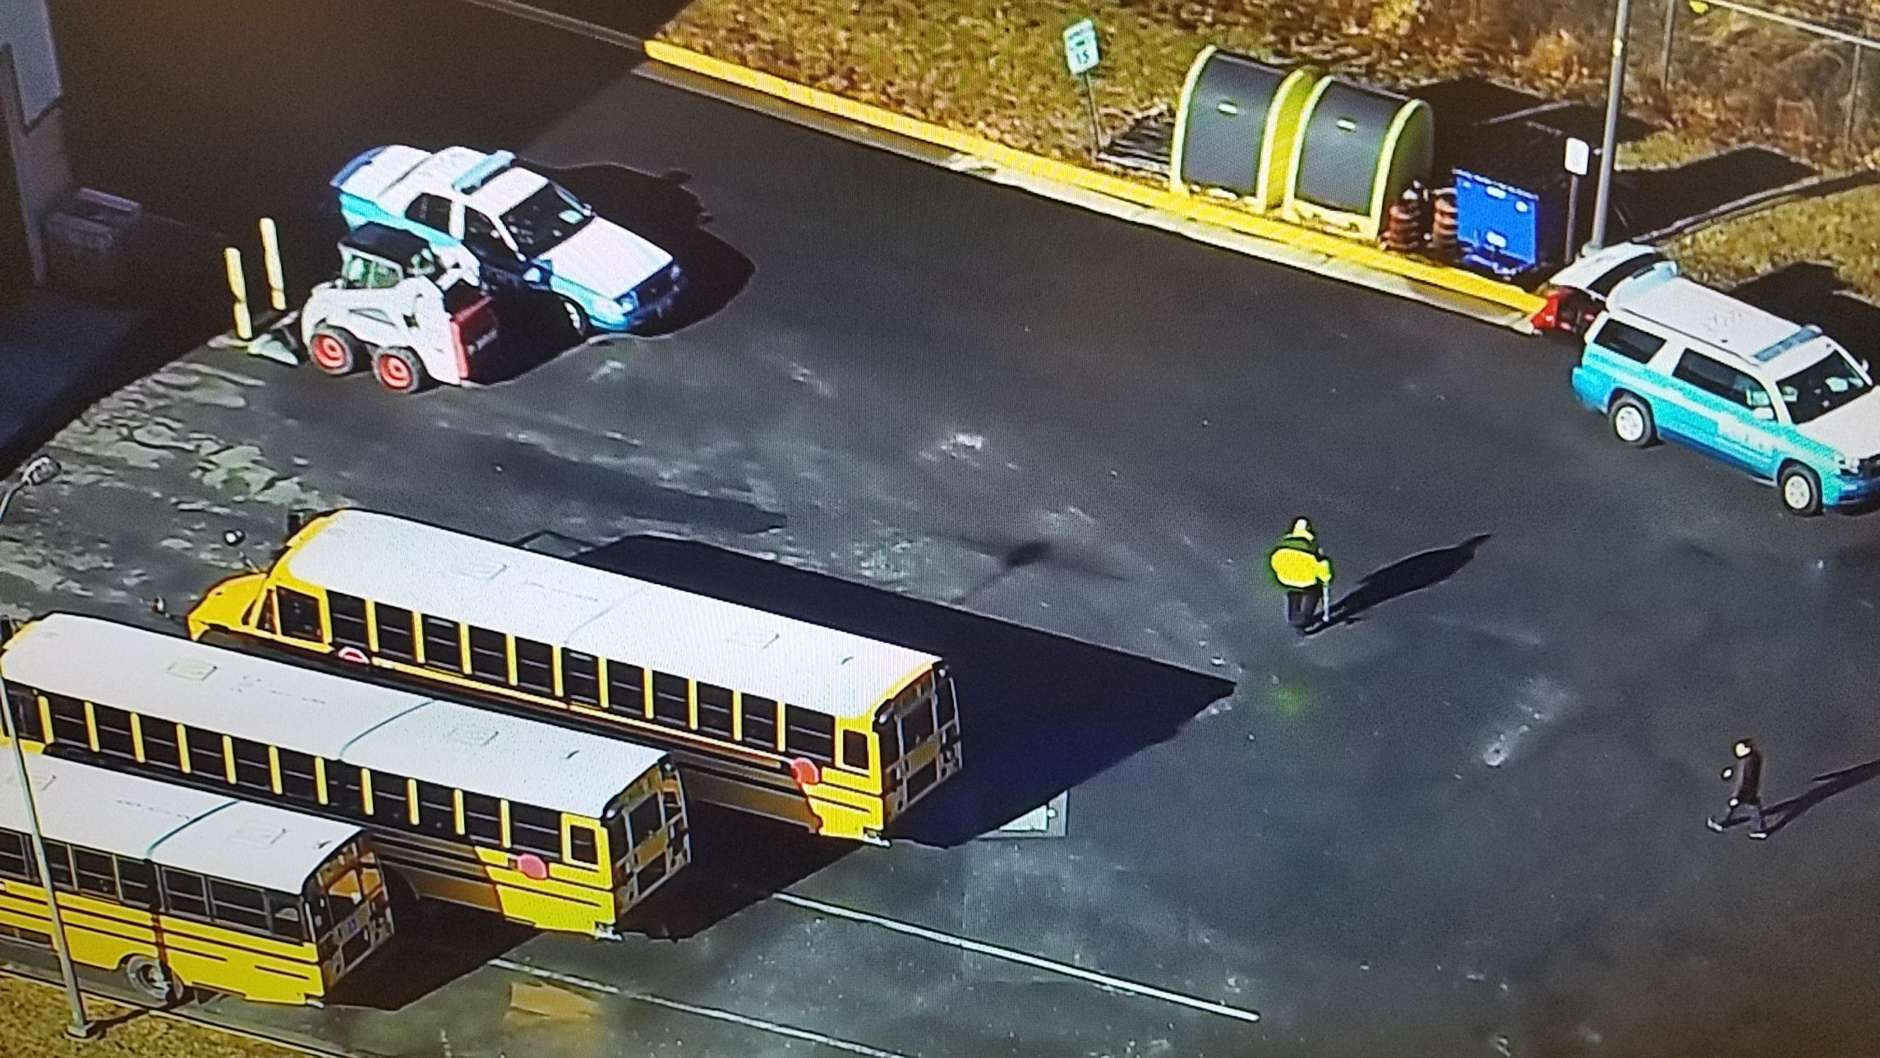 The scene where a bus driver was struck by a Prince William County school bus in Bristow, Virginia. (NBC Washington)